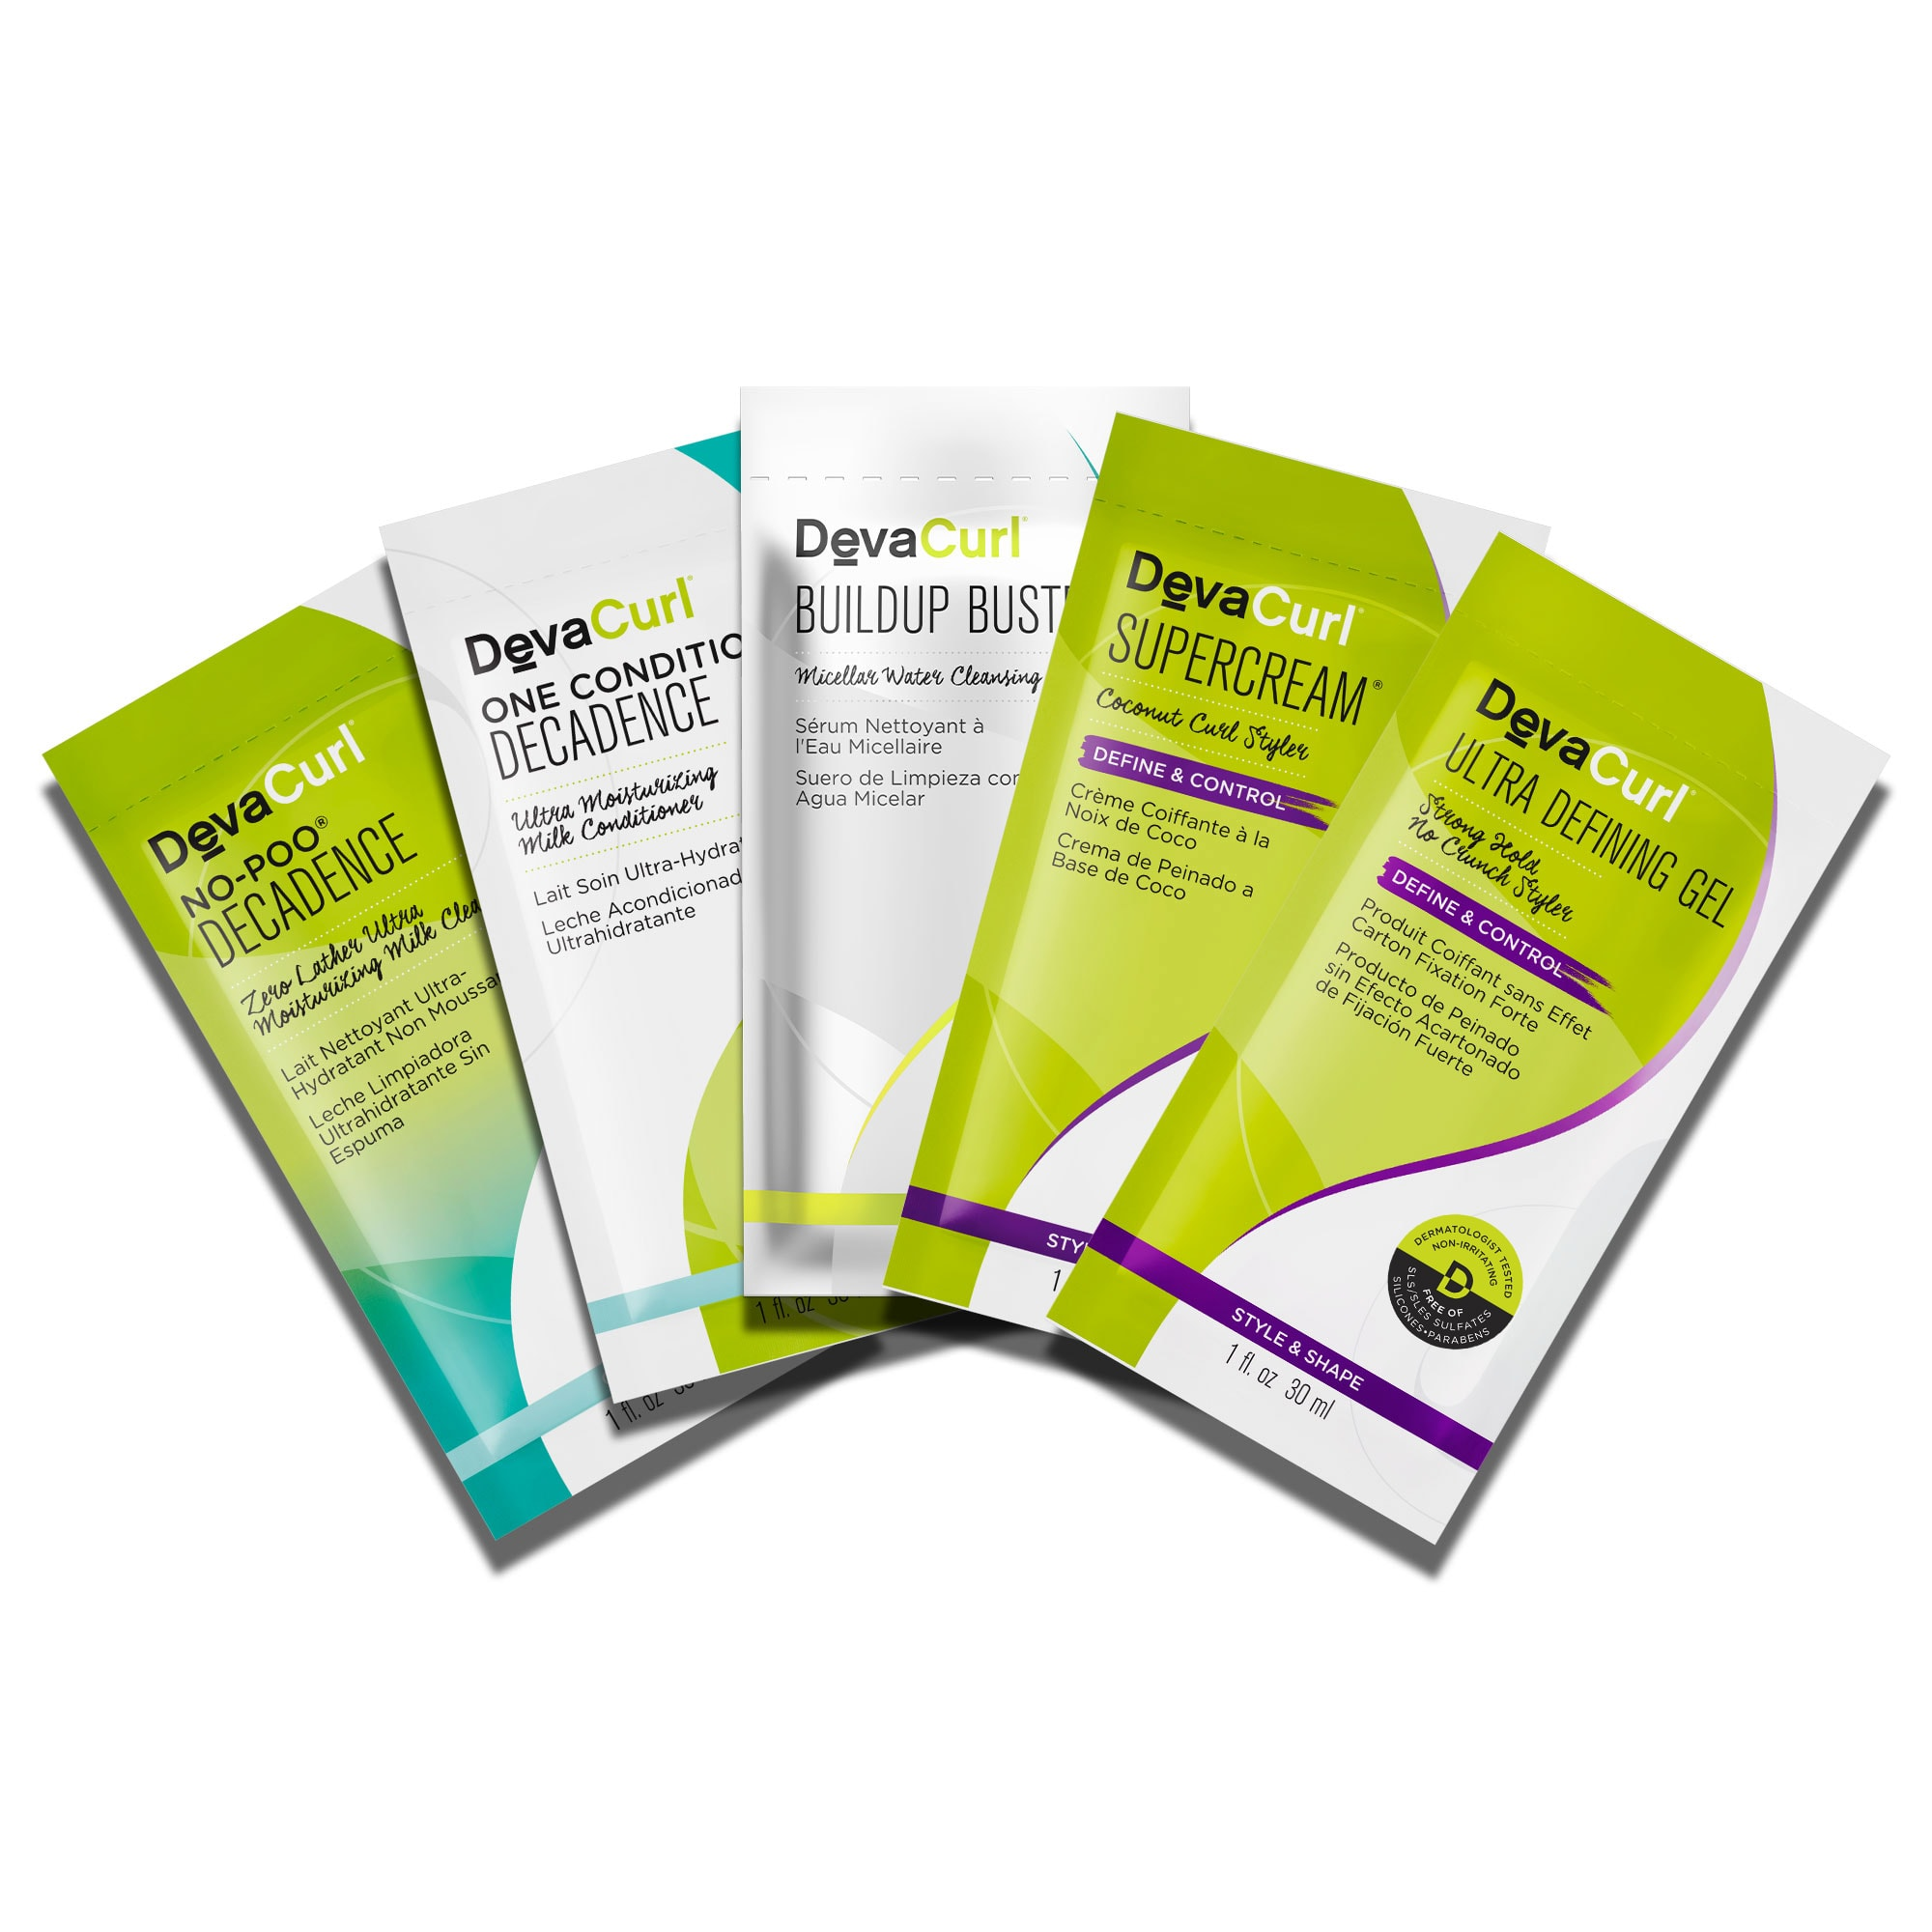 5 packettes: No-Poo & One Condition Decadence, Buildup Buster, SuperCream and Ultra Defining Gel